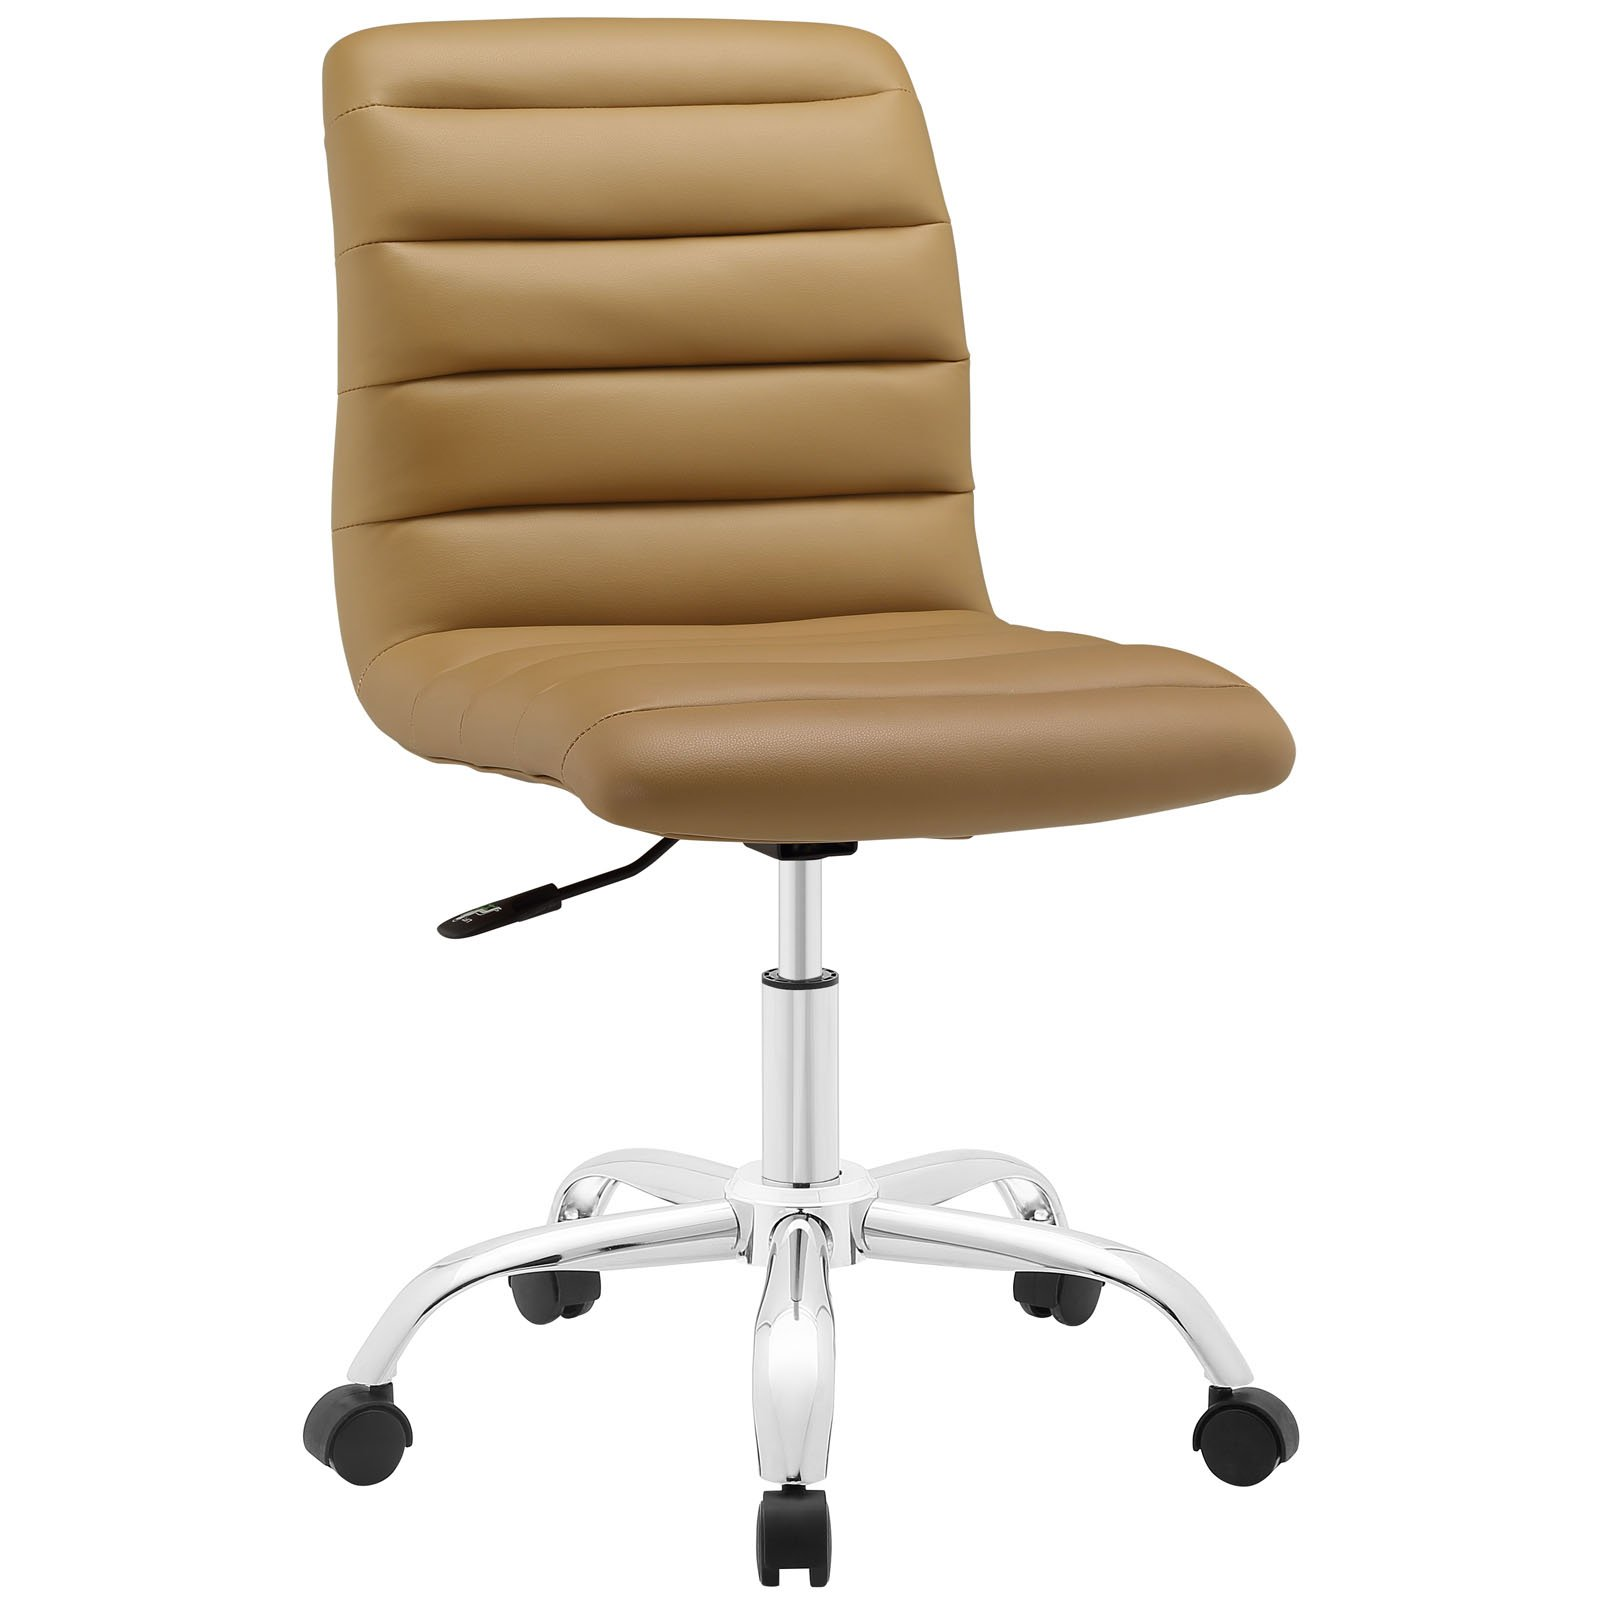 Modway Ripple Mid Back Office Chair, Tan by Modway (Image #1)